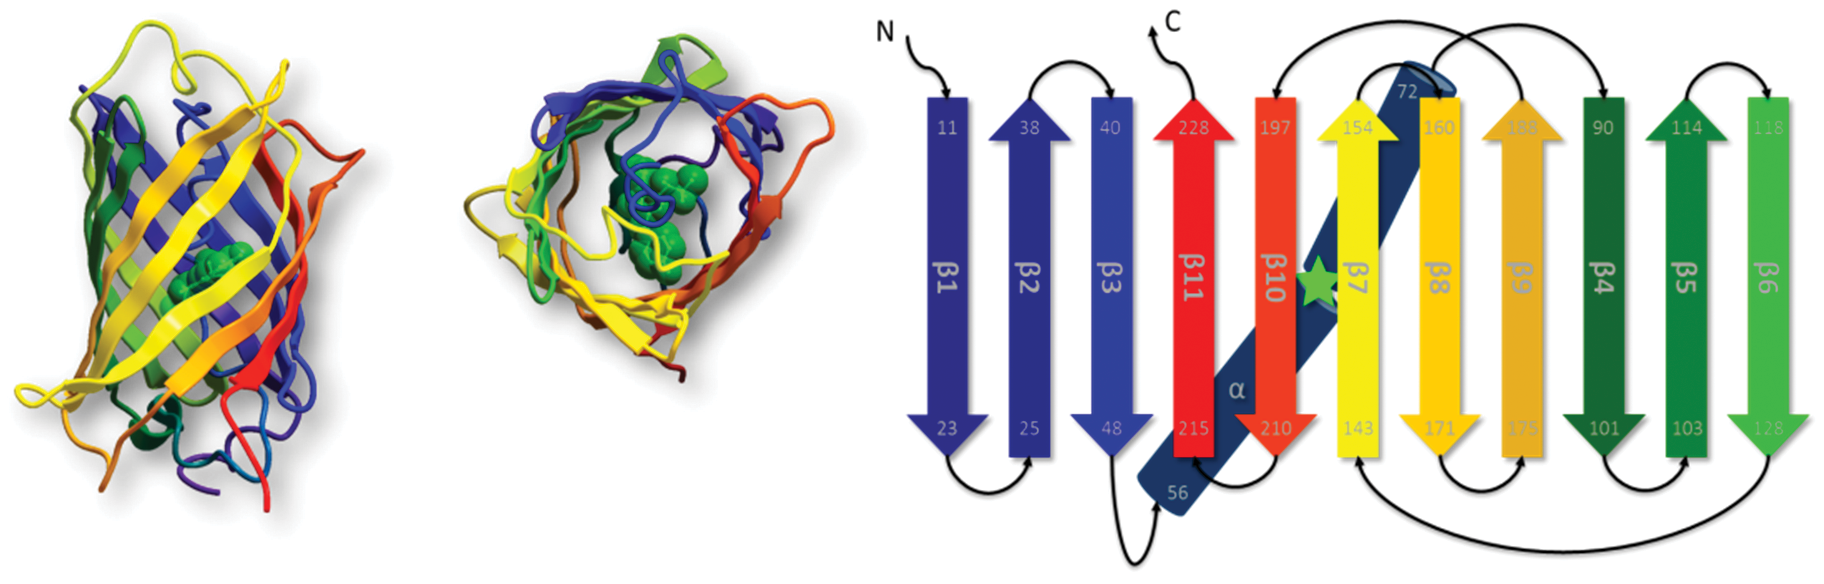 Engineering the Molecular Architecture of Proteins